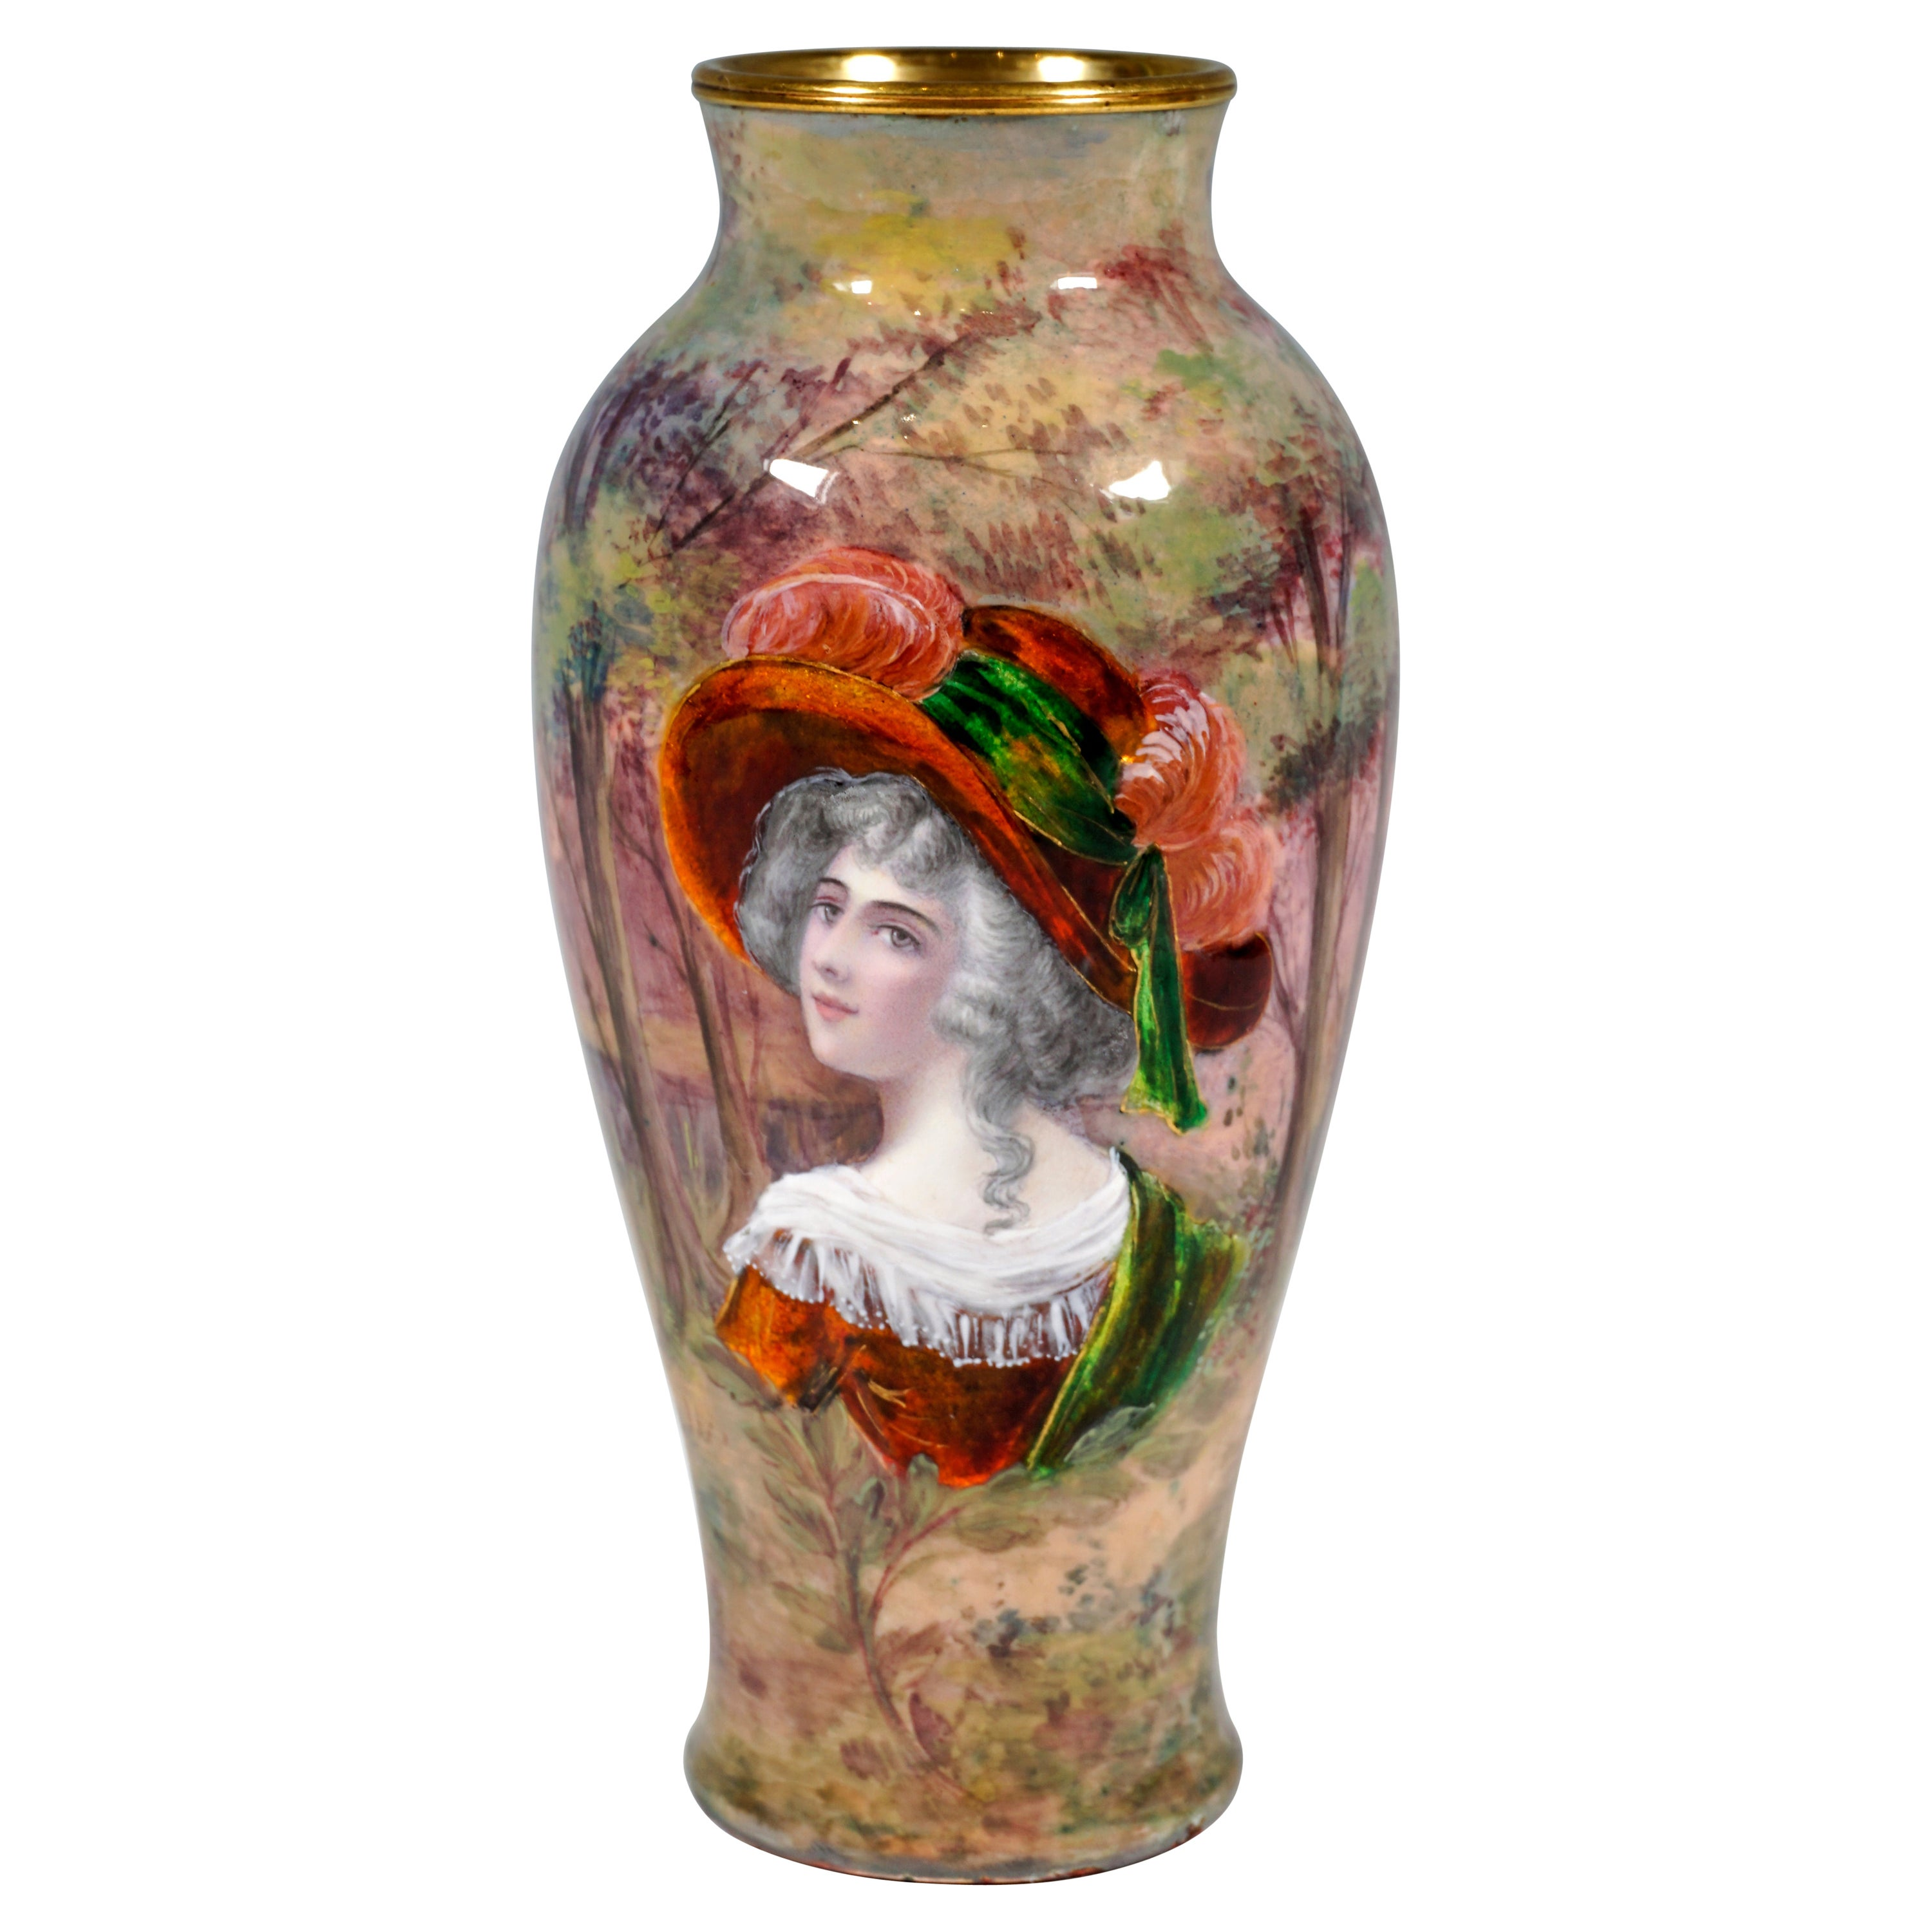 19th Century Viennese Enamel Vase with Portrait of a Lady in Front of Landscape